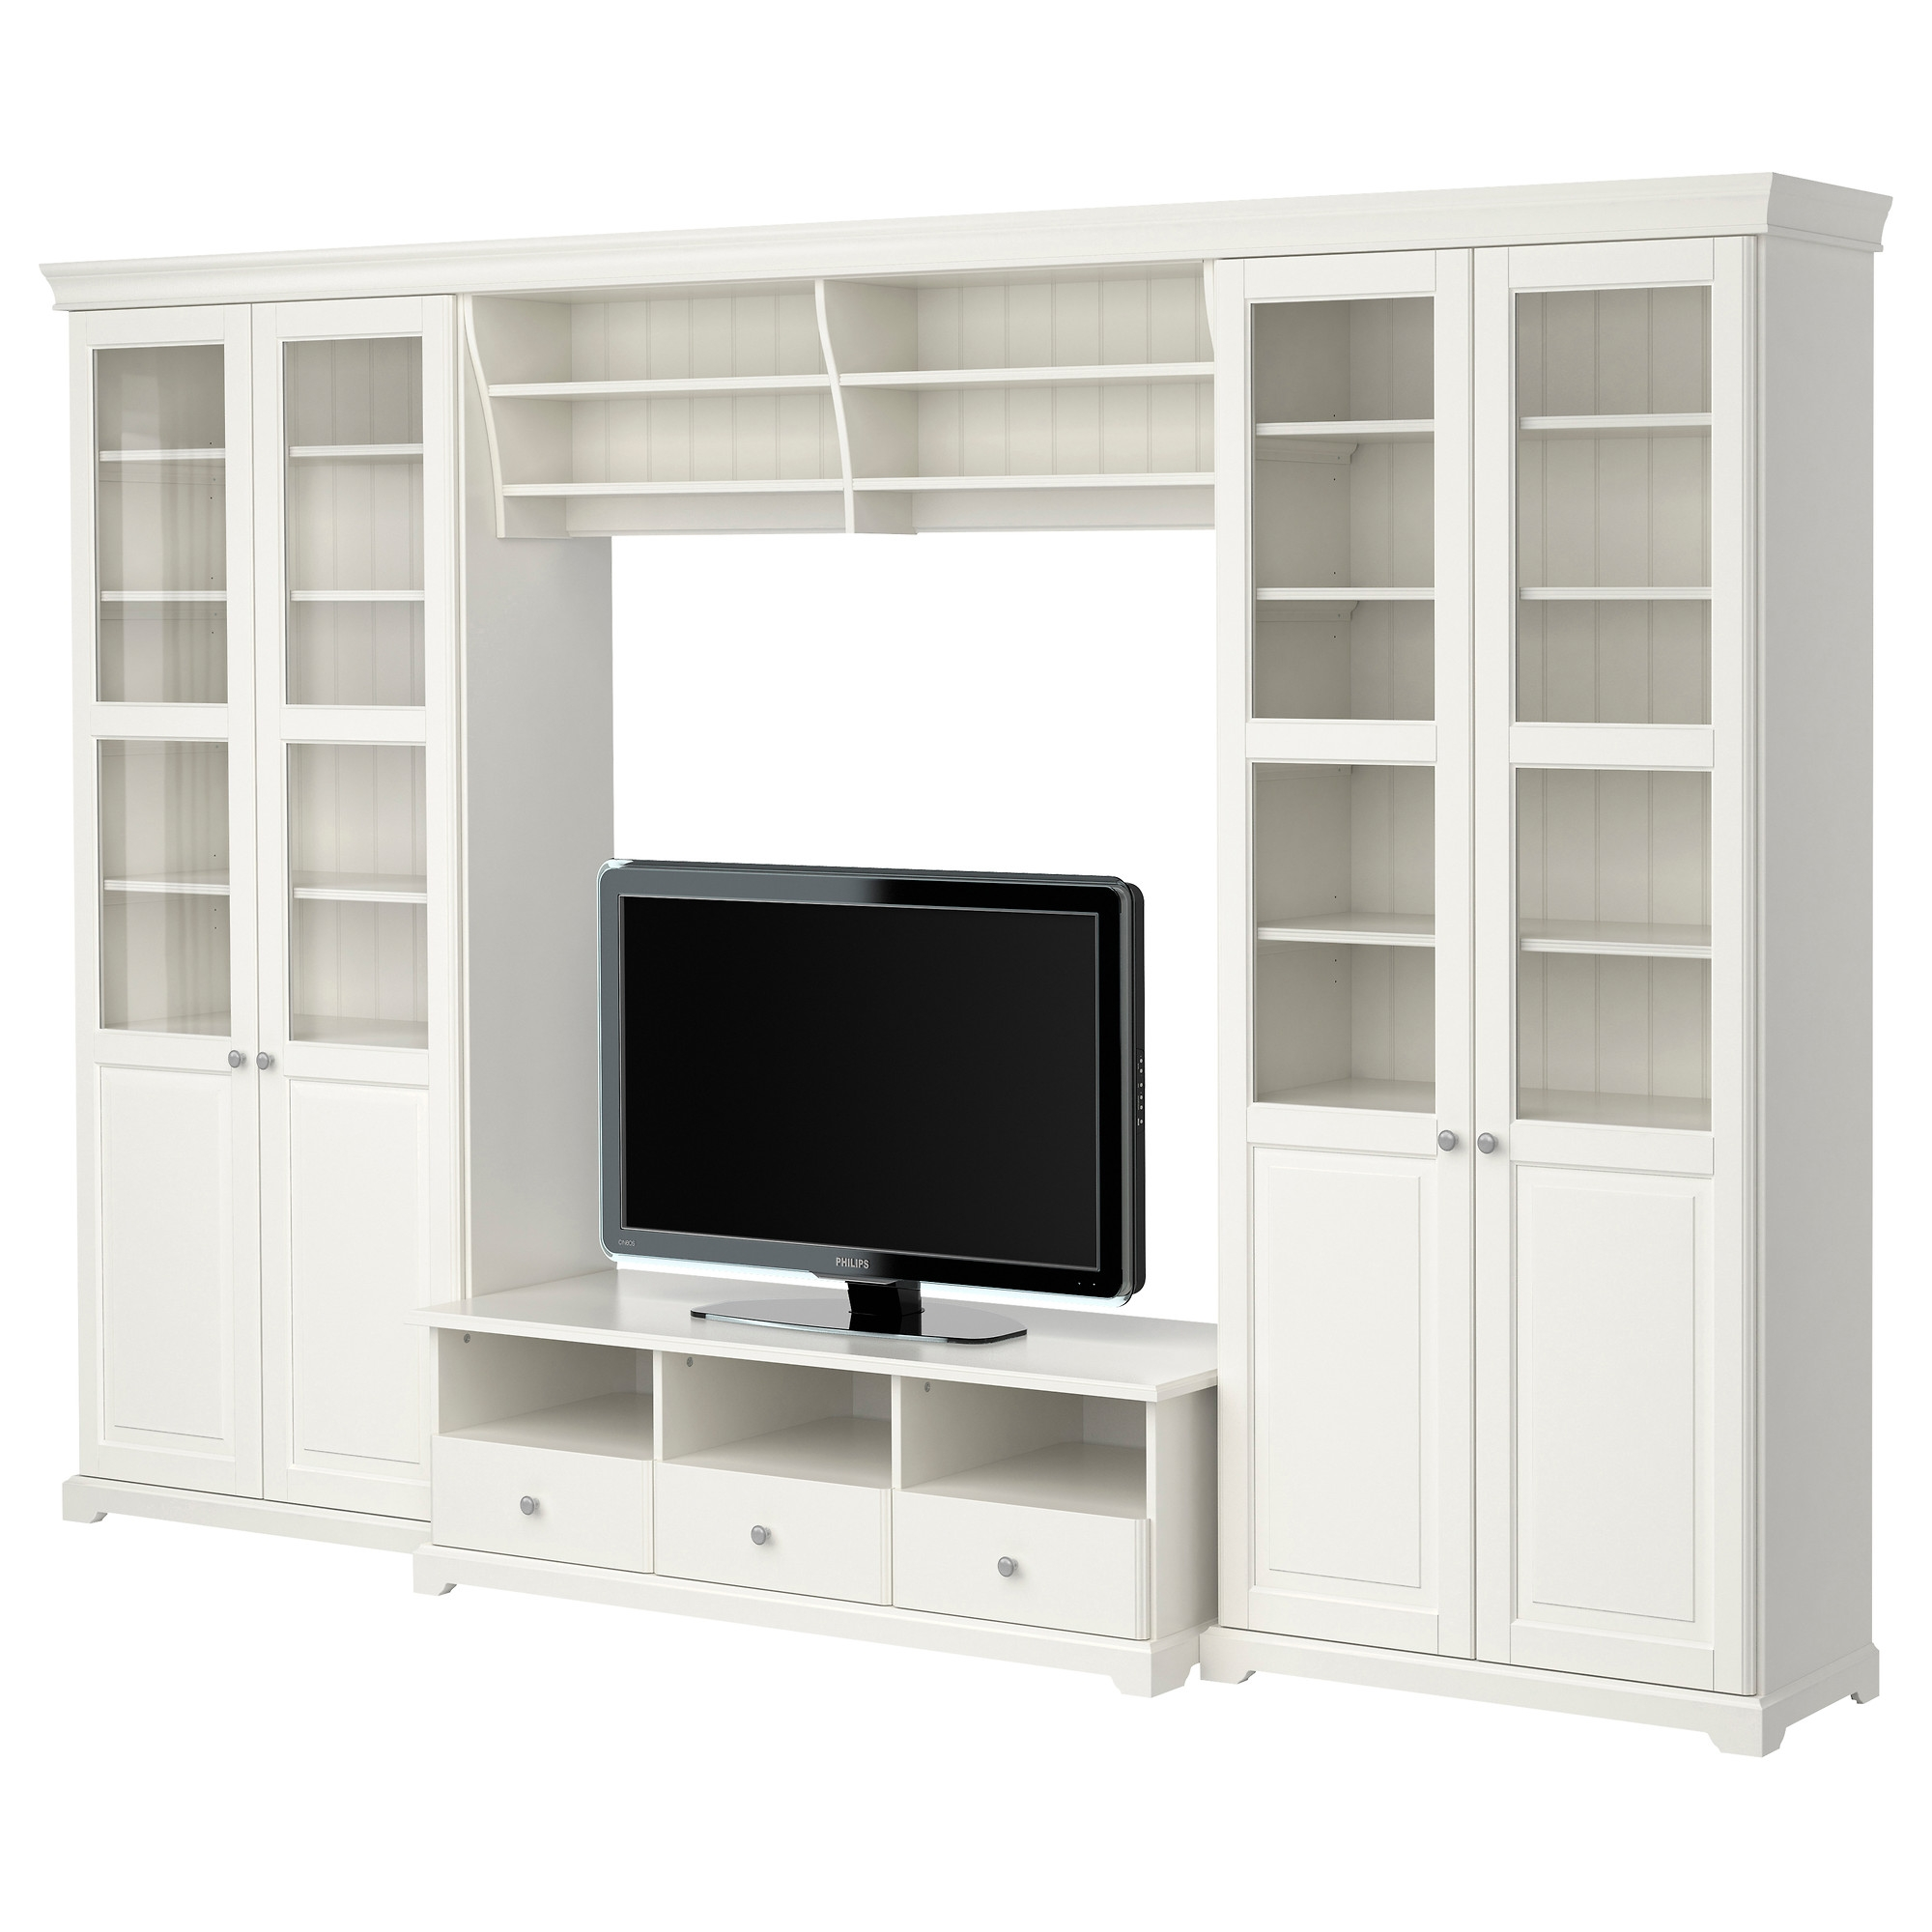 Tv Stands Entertainment Centers Ikea Regarding Tv Storage Unit (View 1 of 14)